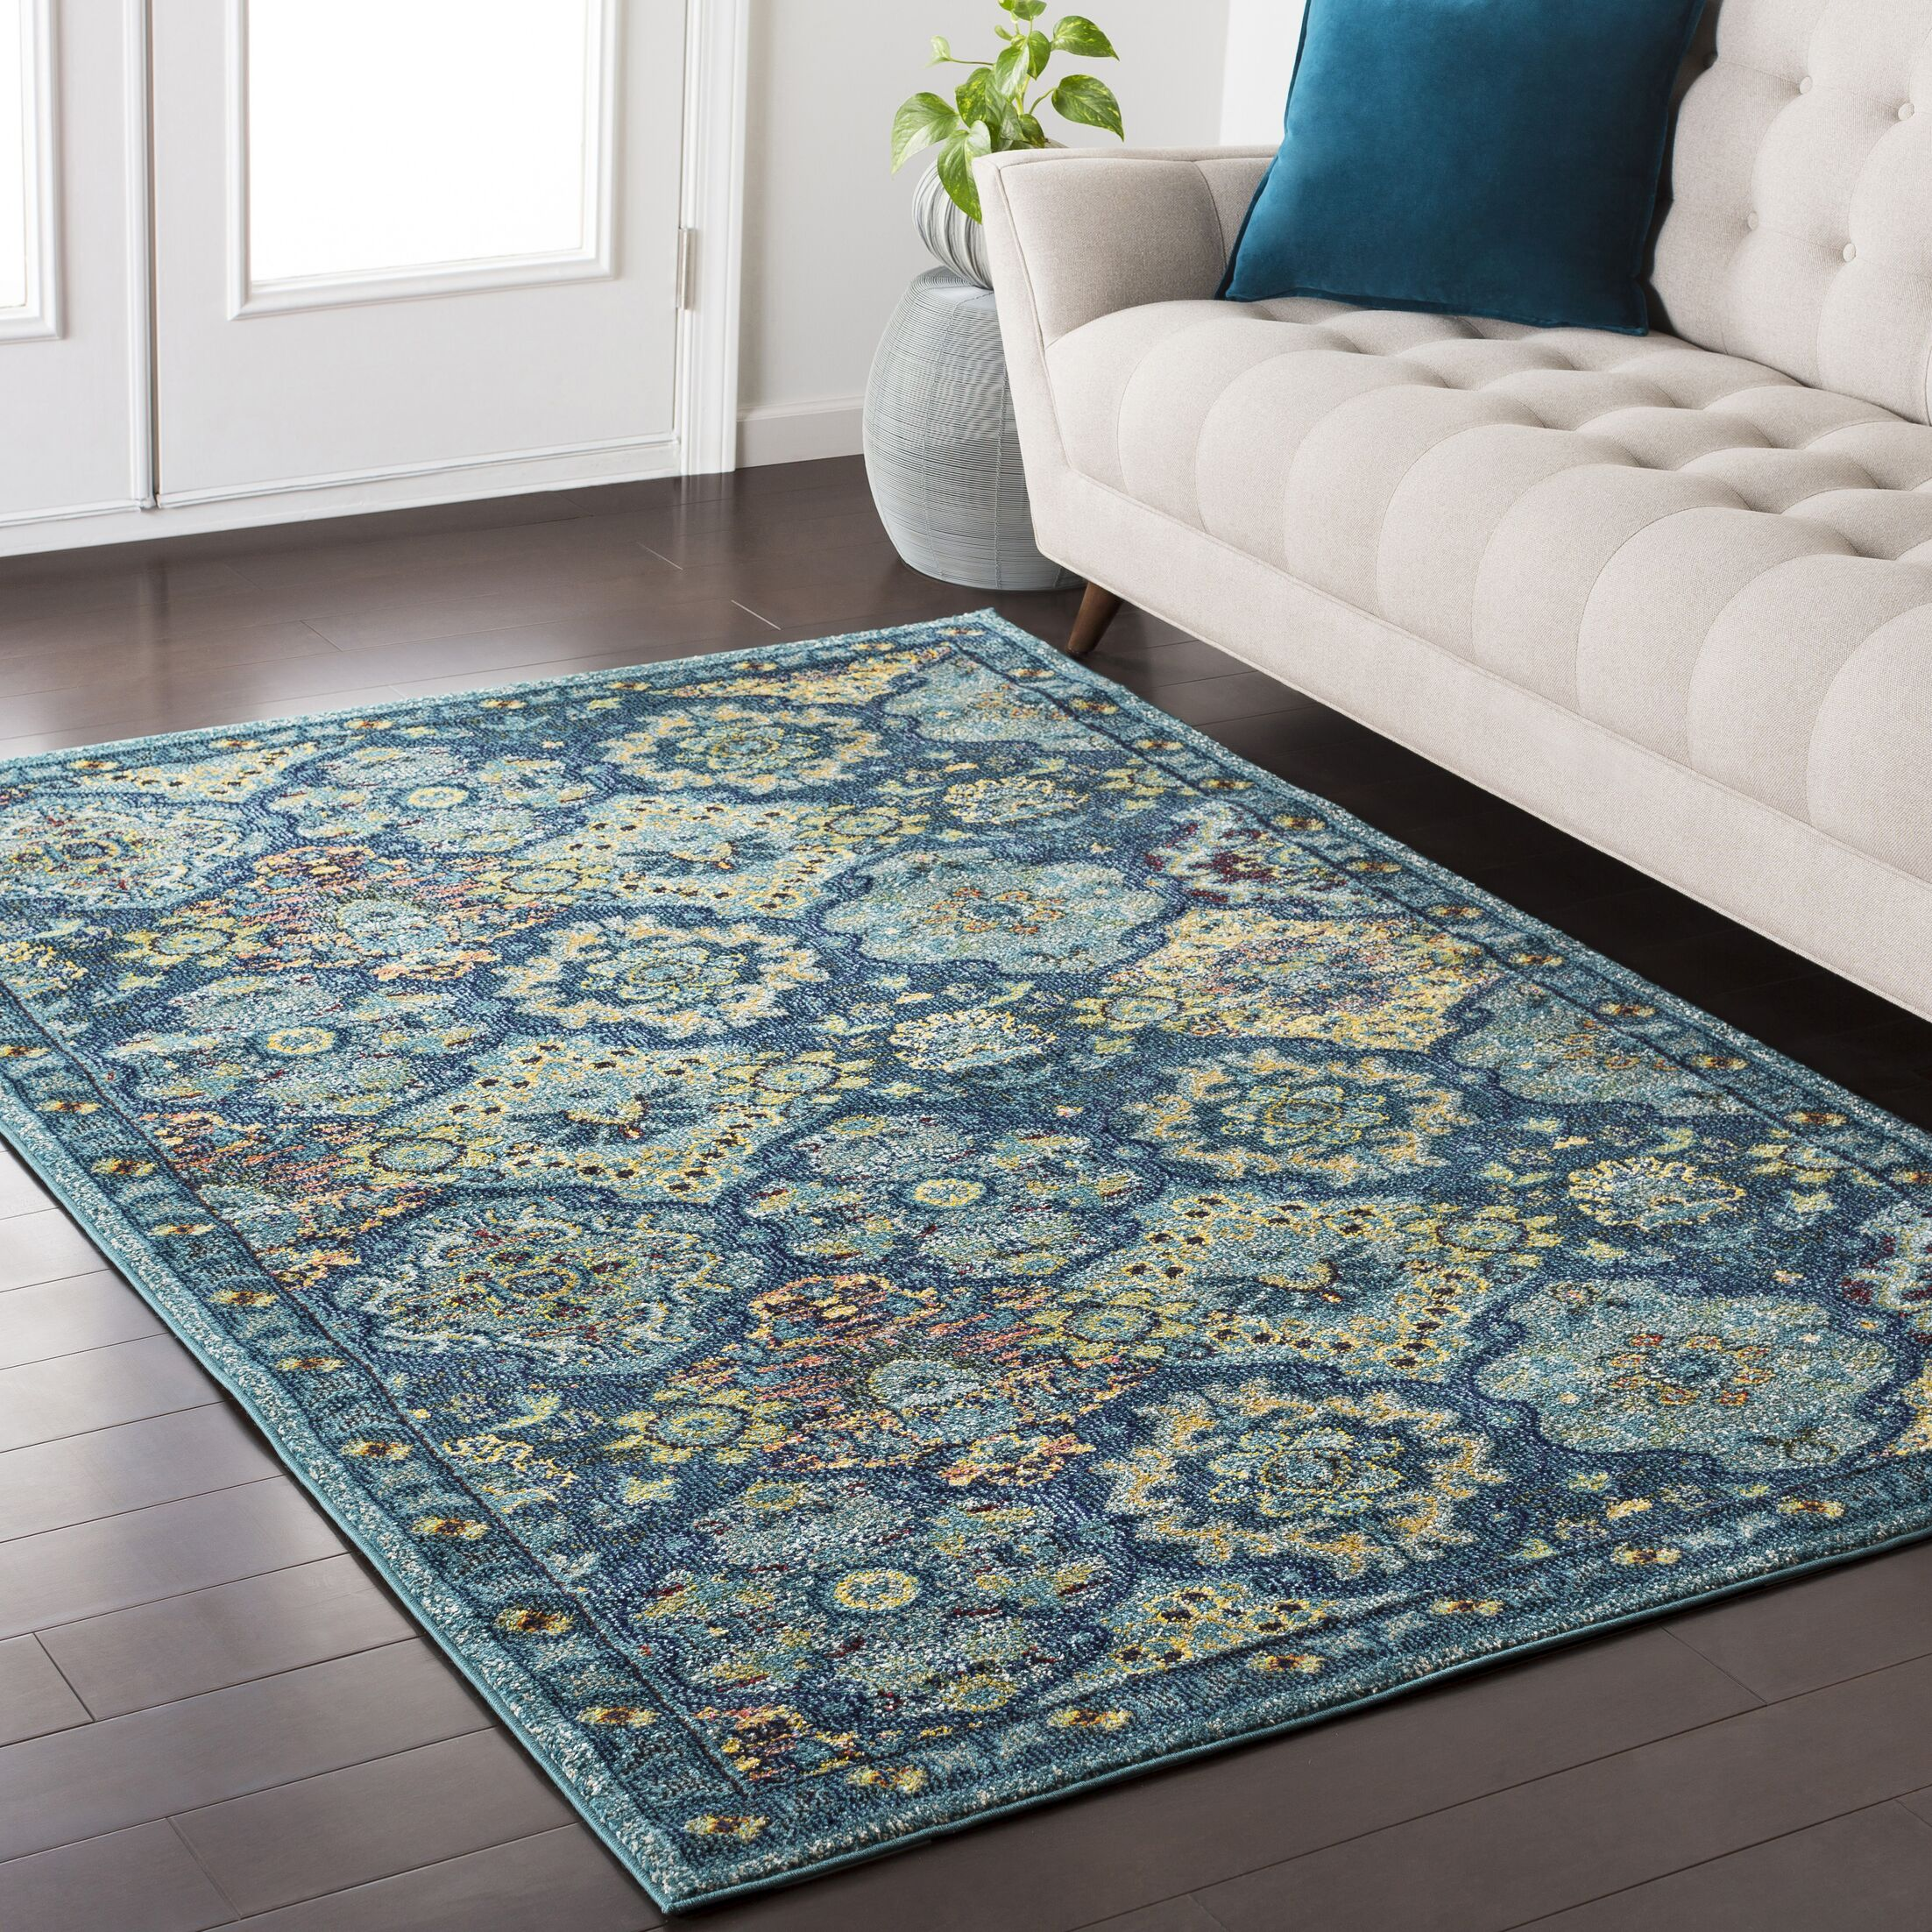 Andersonville Blue Area Rug Rug Size: Rectangle 5'3